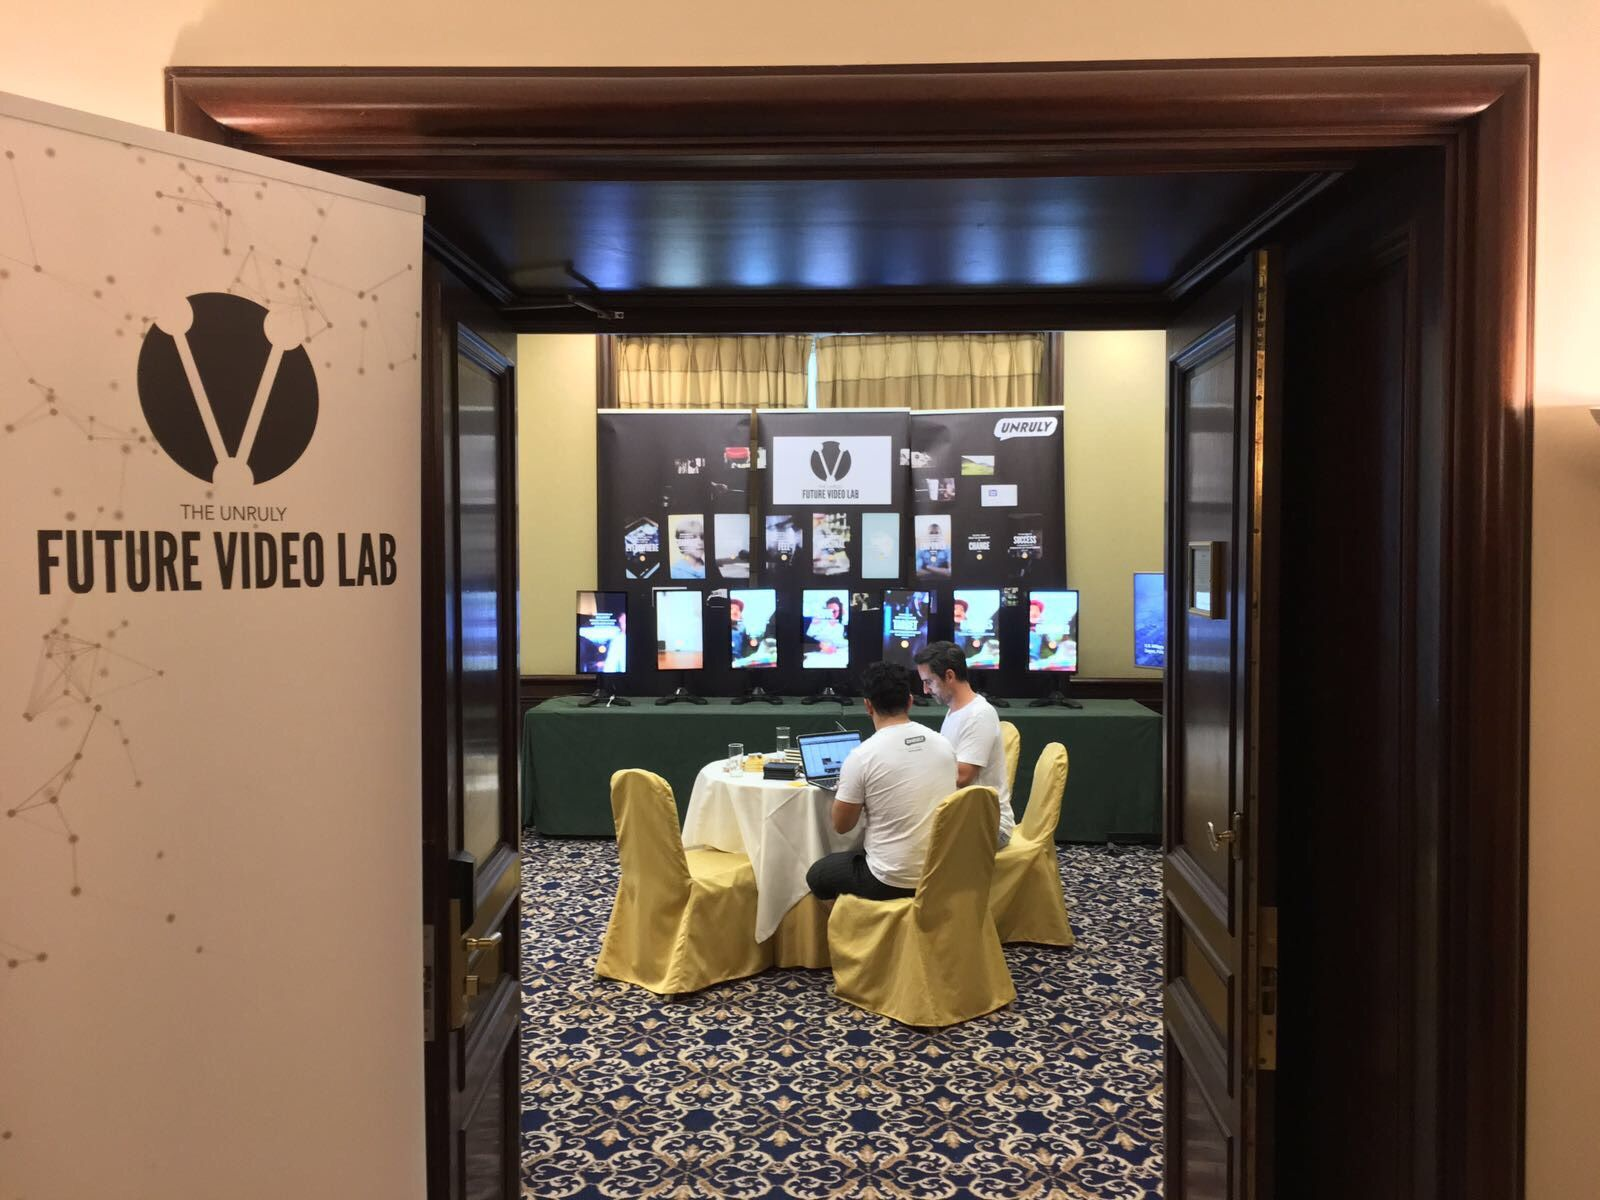 Pop by the @CarltonCannes for a Future Video Lab session & learn how to future-proof your video strategies! https://t.co/Lsi6Ki3OQs